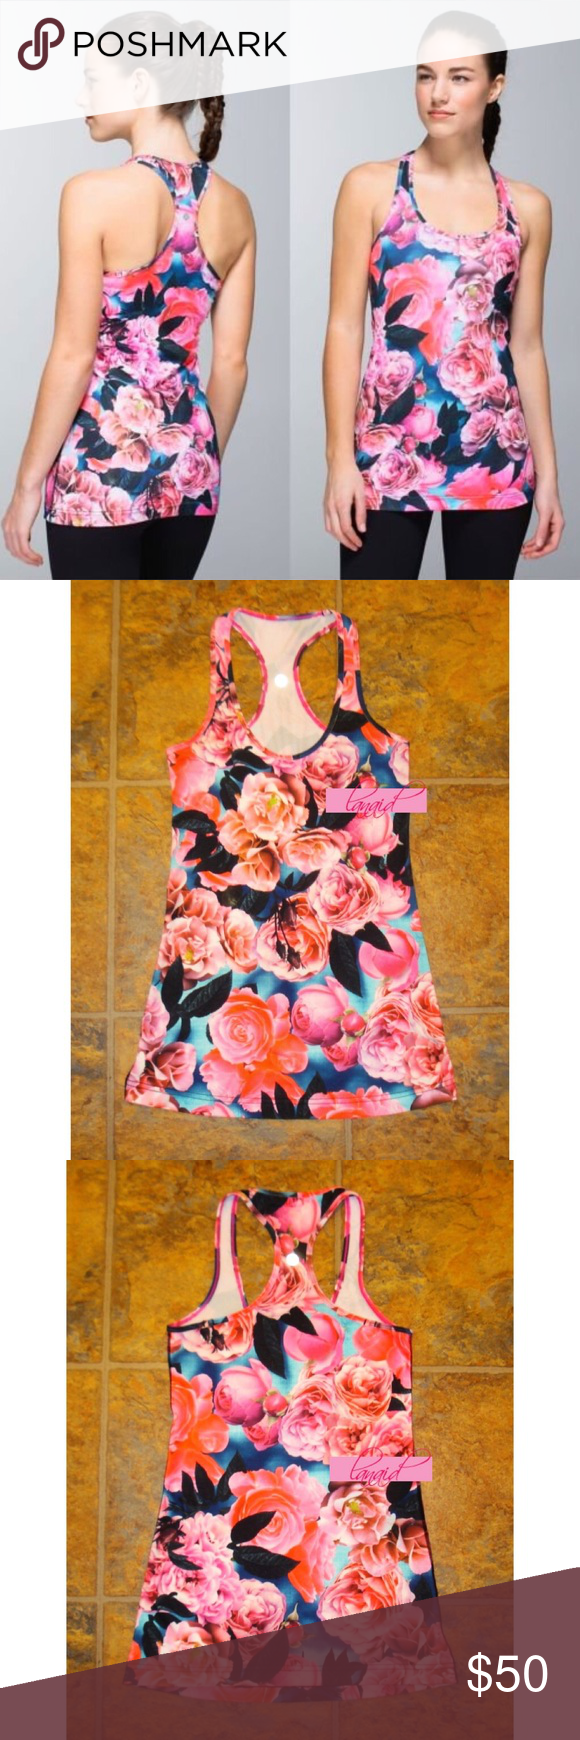 "Lululemon Secret Garden Cool Racerback Tank Top 4 📡PRICE IS FIRM AND NON-NEGOTIABLE. NO OFFERS. LOWBALLERS WILL BE BLOCKED. NO TRADES.📡 Lululemon ""Cool Racerback"" tank top in Secret Garden. Made with Luon®, which is sweat-wicking and breathable with a four-way stretch. Thin racerback keeps you cool. Long length helps this tank stay put and is great for layering. Removable inner tag was taken out, but this is a size 4. The perfect base piece. lululemon athletica Tops Tank Tops"